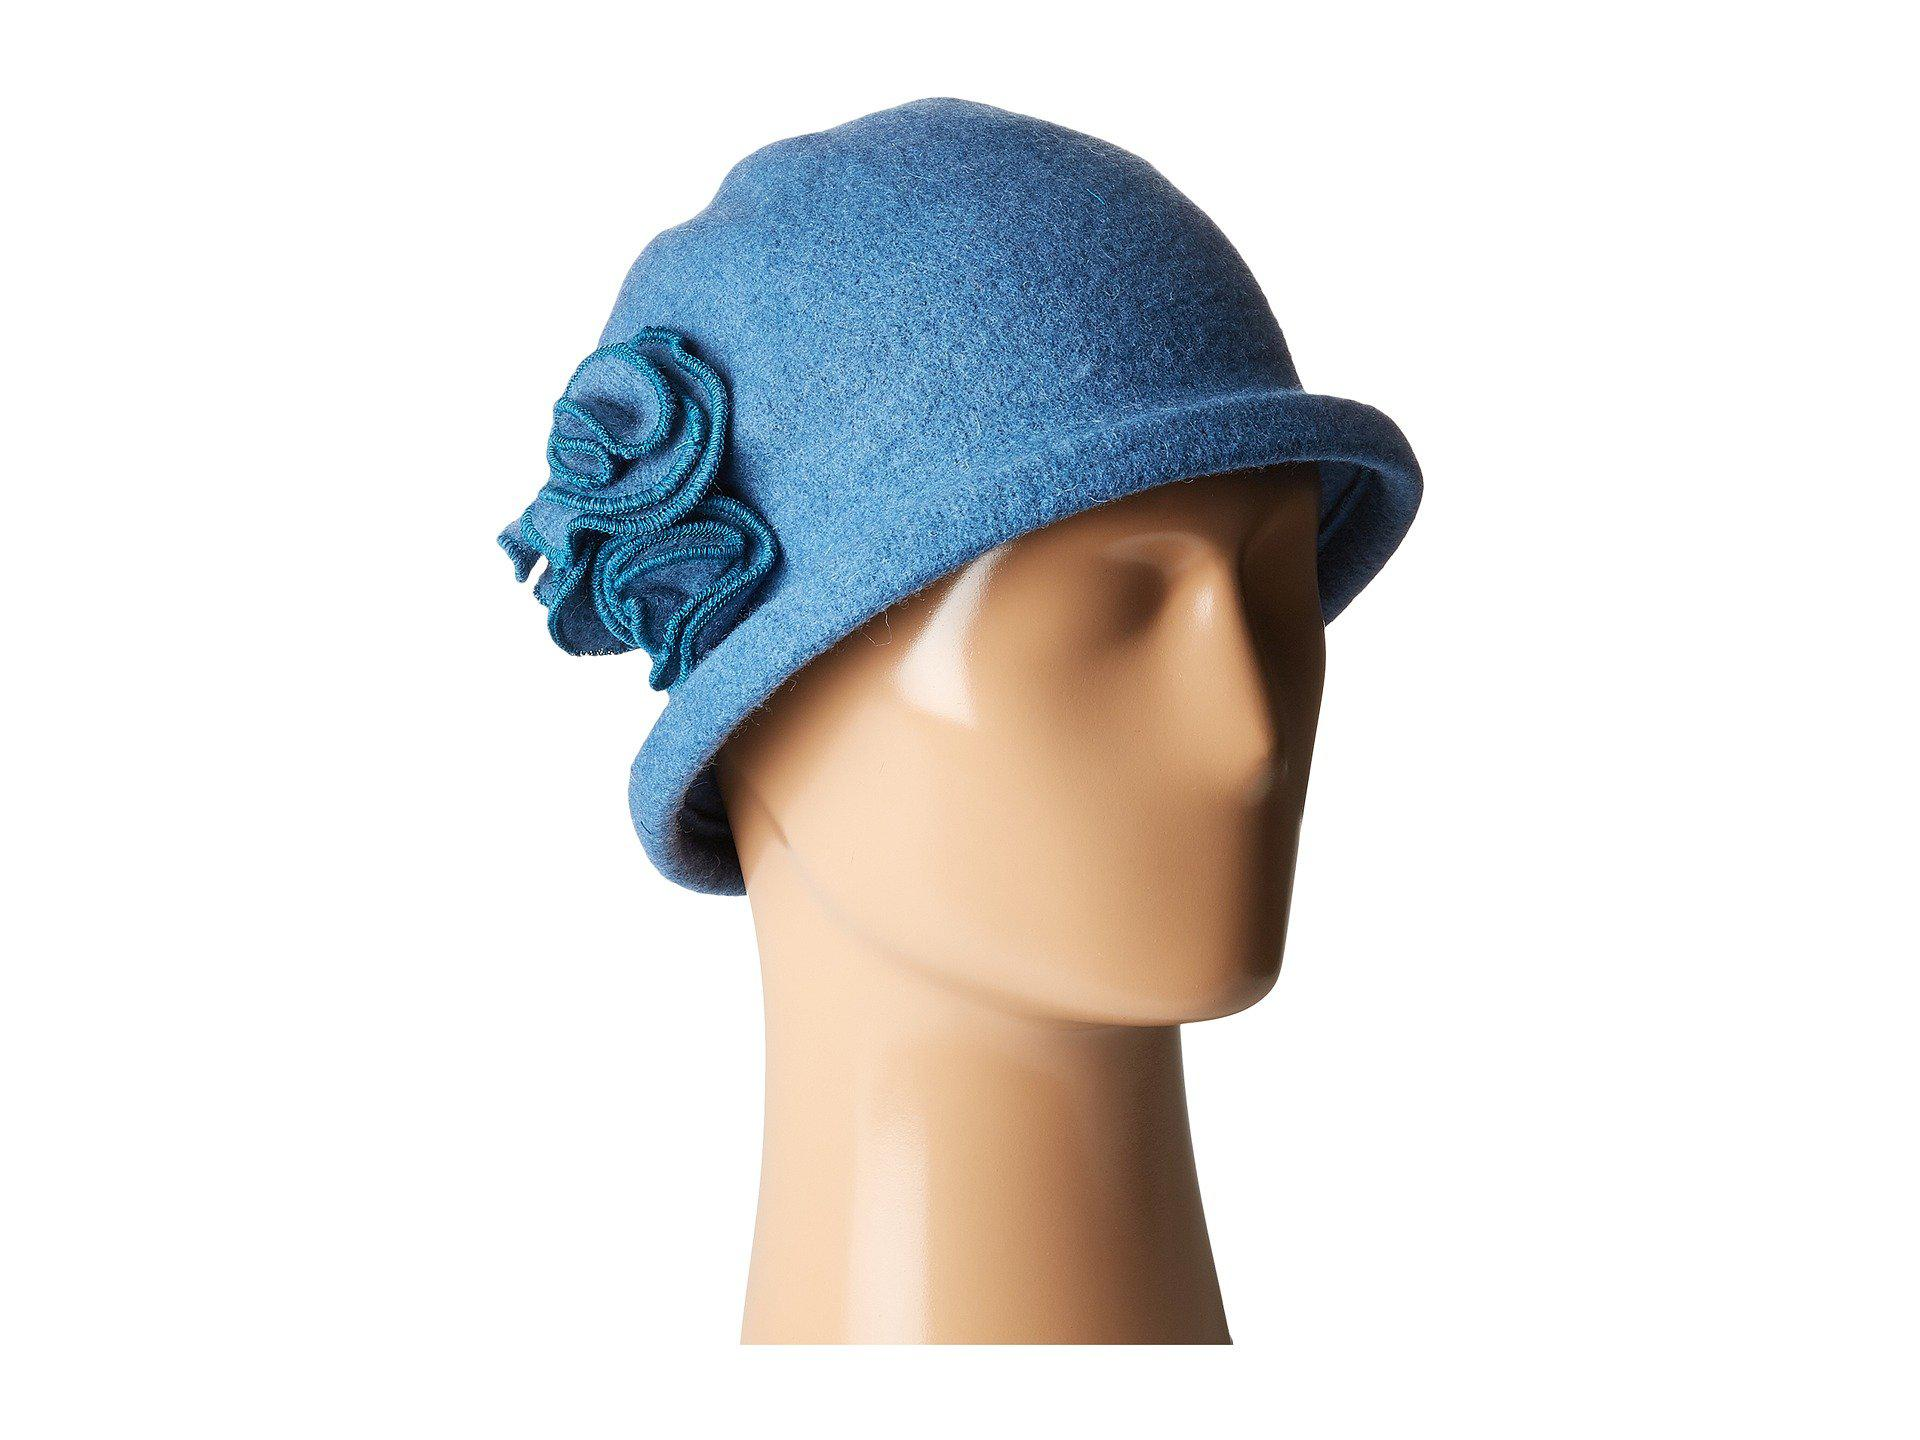 956c1cf27e8 Lyst - San Diego Hat Company Cth8088 Soft Knit Cloche With Side ...